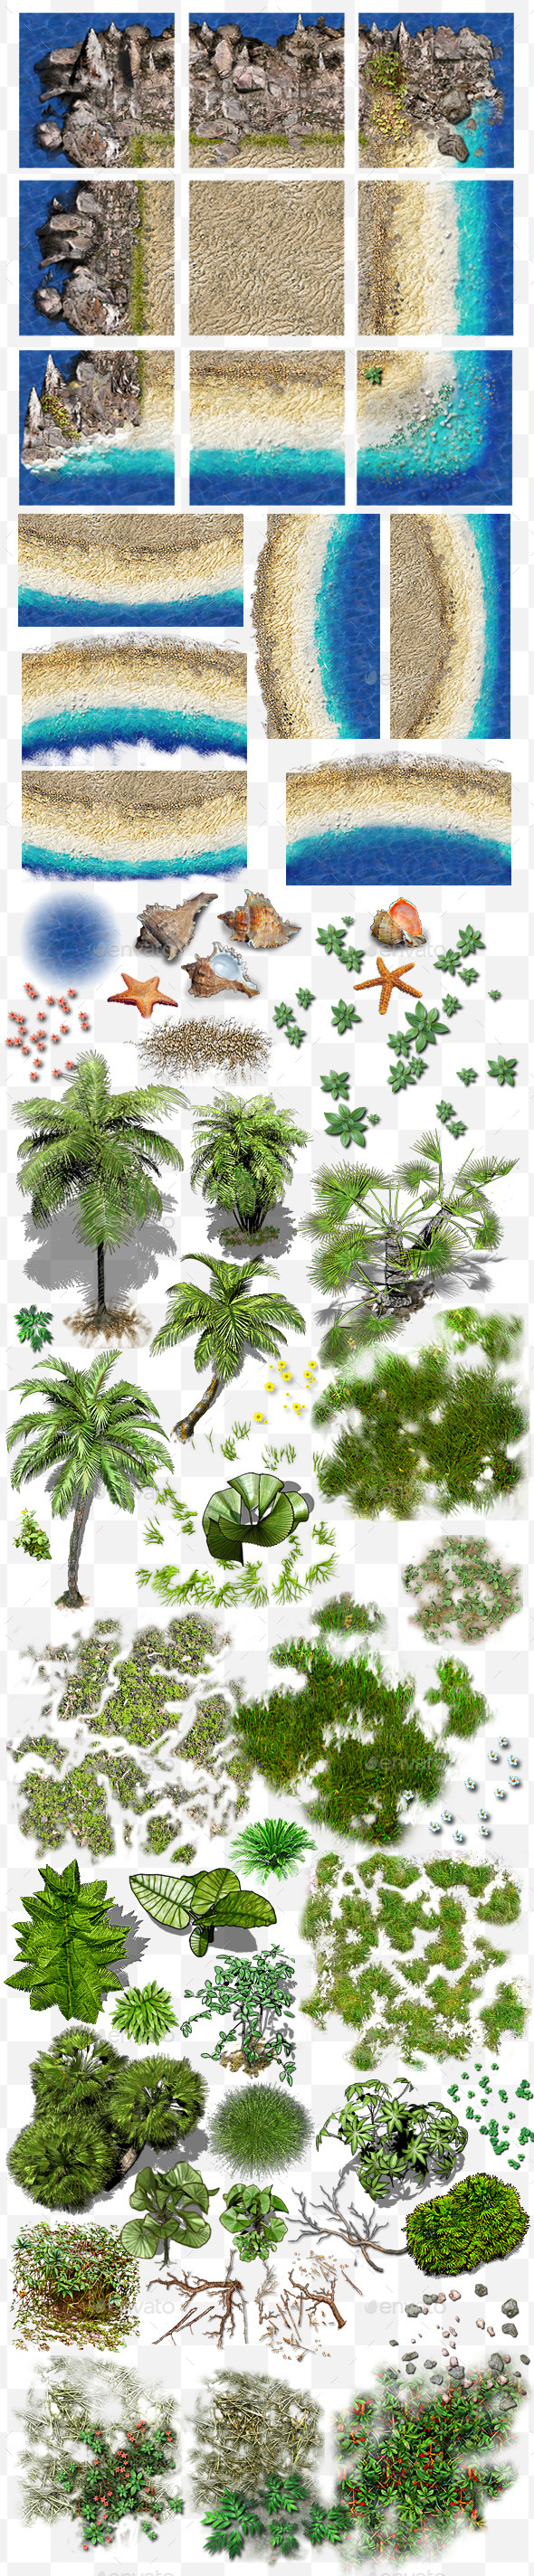 GraphicRiver Jungle coast tile set and decals 11003170